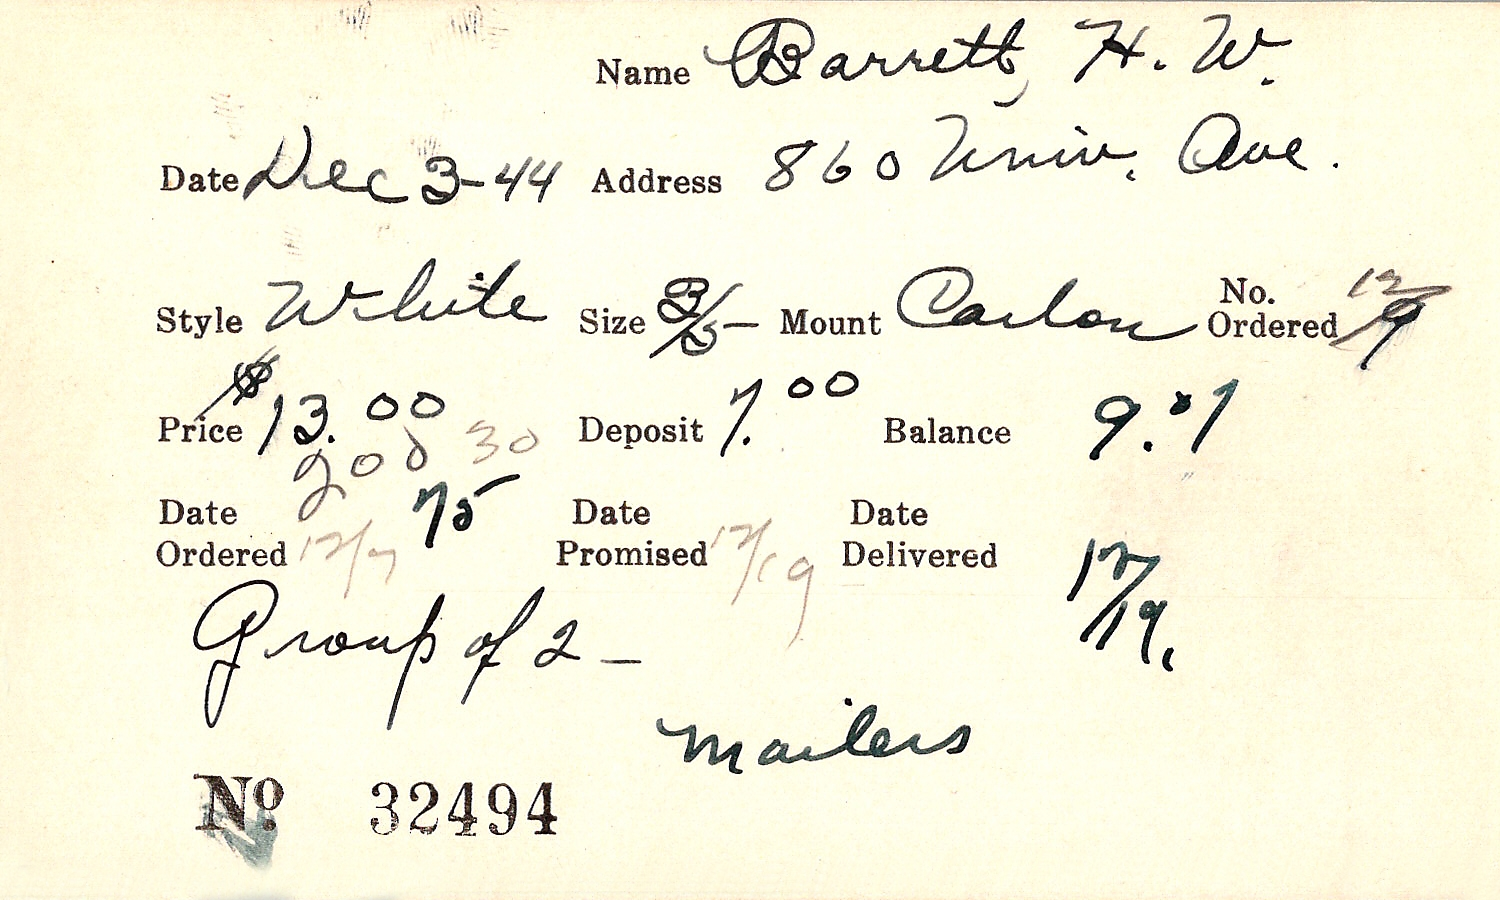 Index card for H. W. Barrett